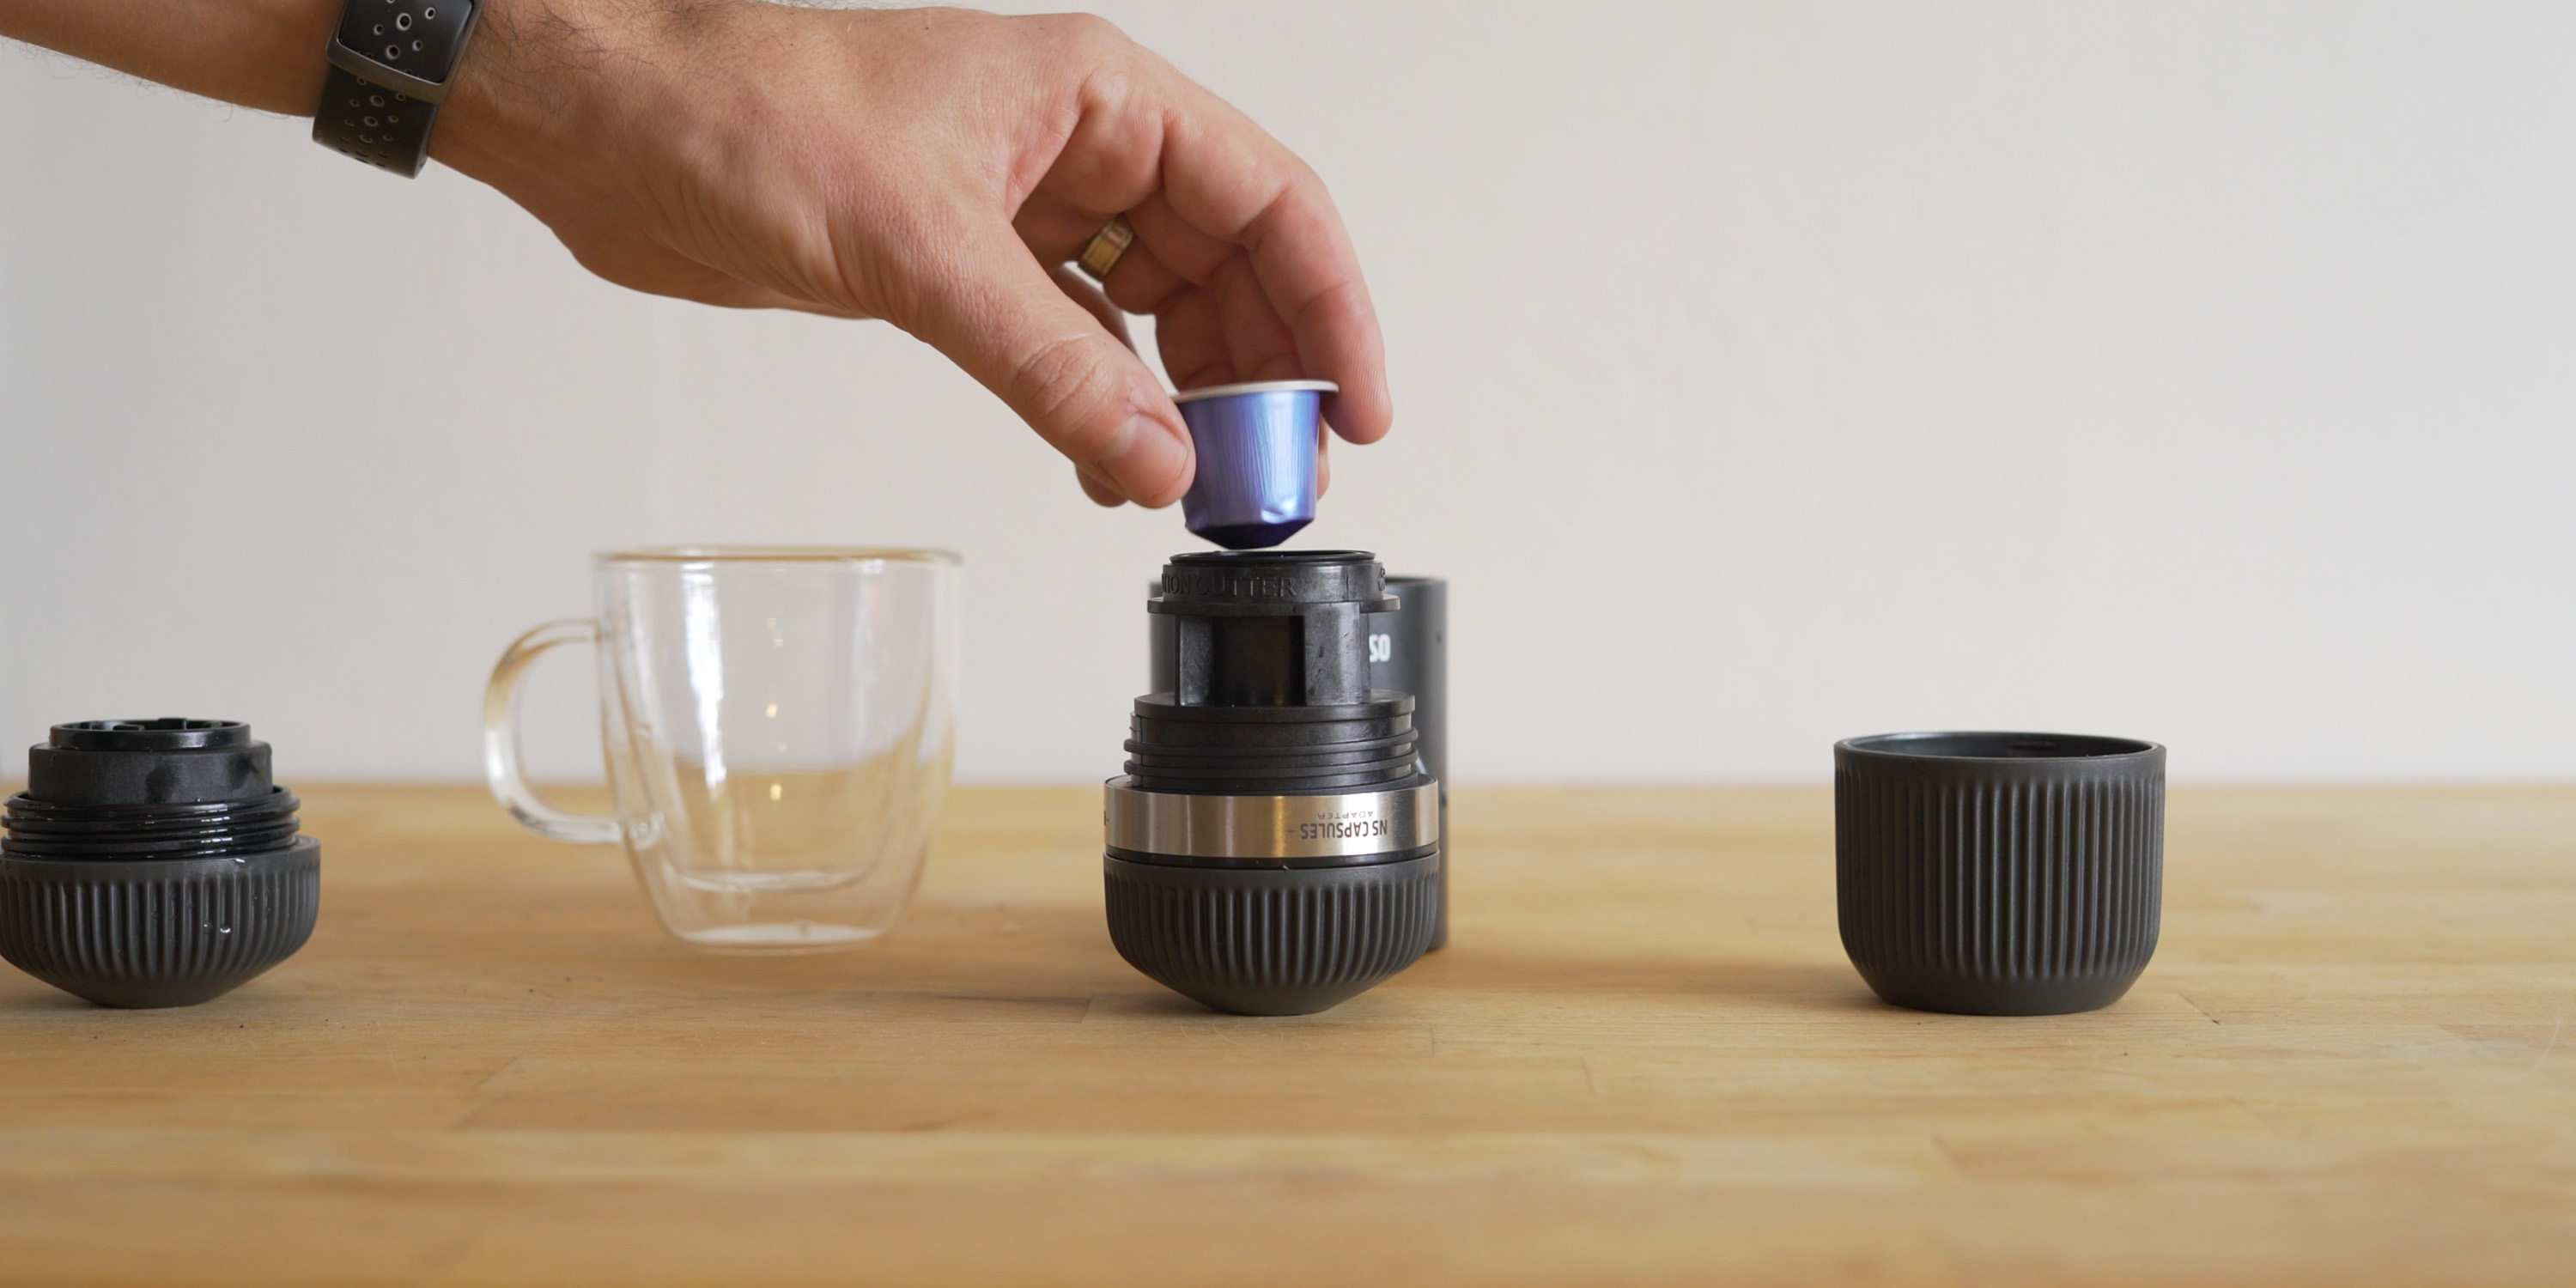 Using the NS adapter for Nanopresso